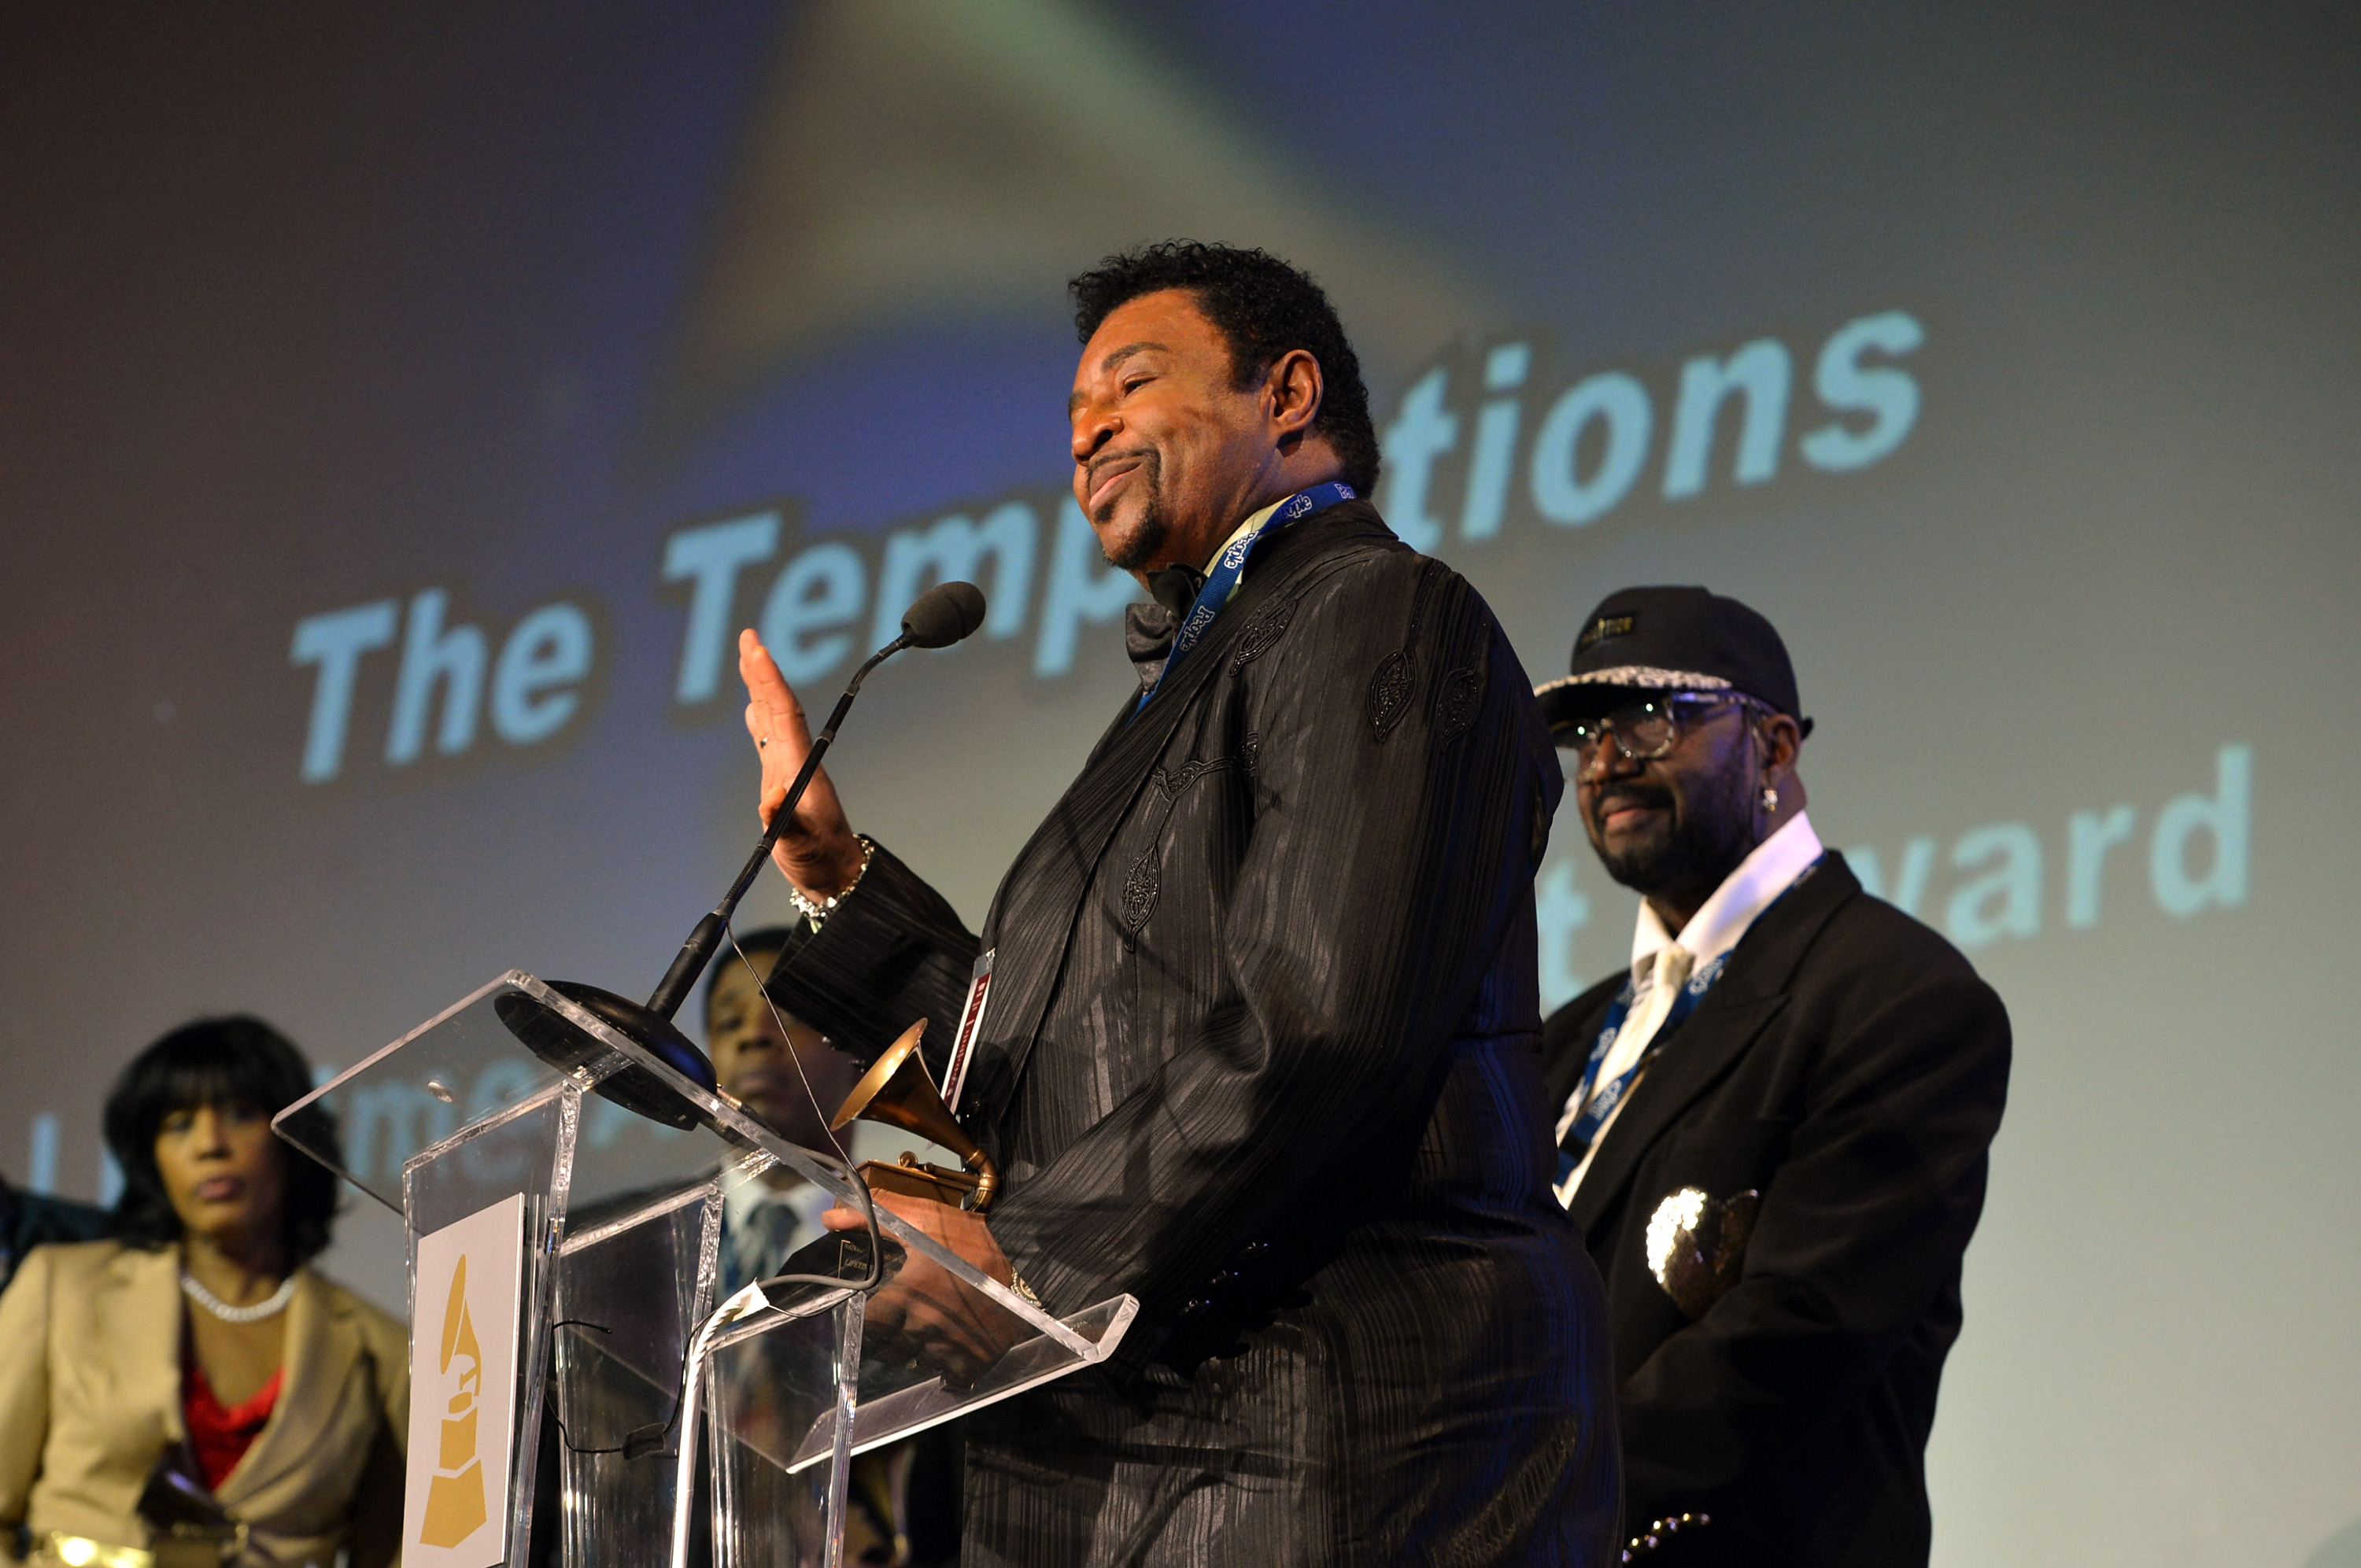 LOS ANGELES, CA - FEBRUARY 09: Singer Dennis Edwards of The Temptations speaks onstage during the Special Merit Awards Ceremony during the 55th Annual GRAMMY Awards at the Wilshire Ebell Theater on February 9, 2013 in Los Angeles, California. (Photo by Rick Diamond/WireImage)